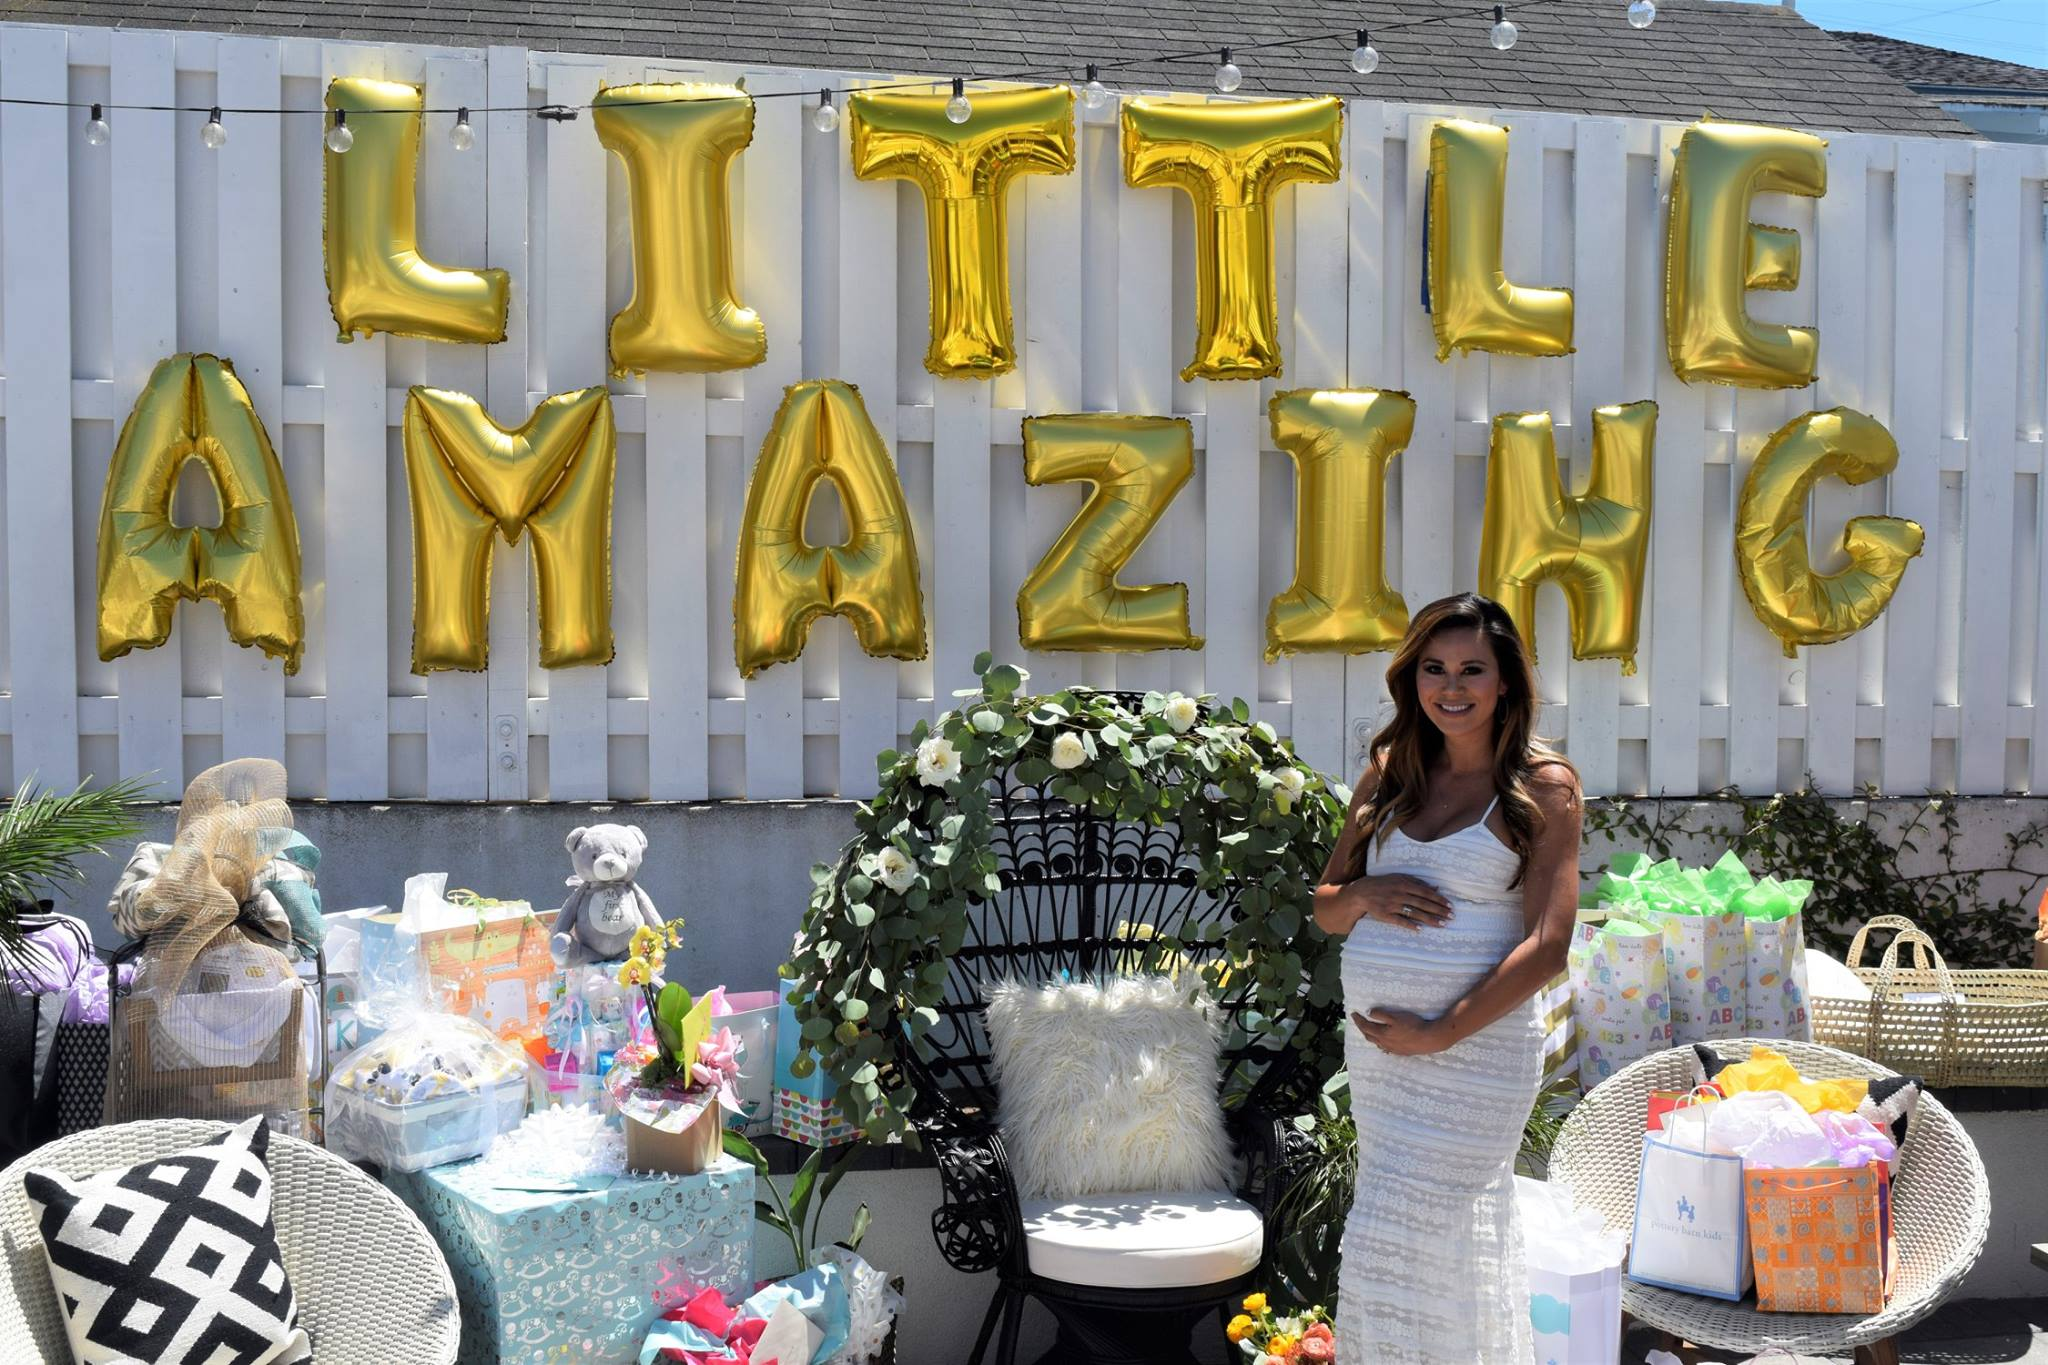 Feeling SO loved by all of our family & friends! @LittleAmazing is such a blessed baby!